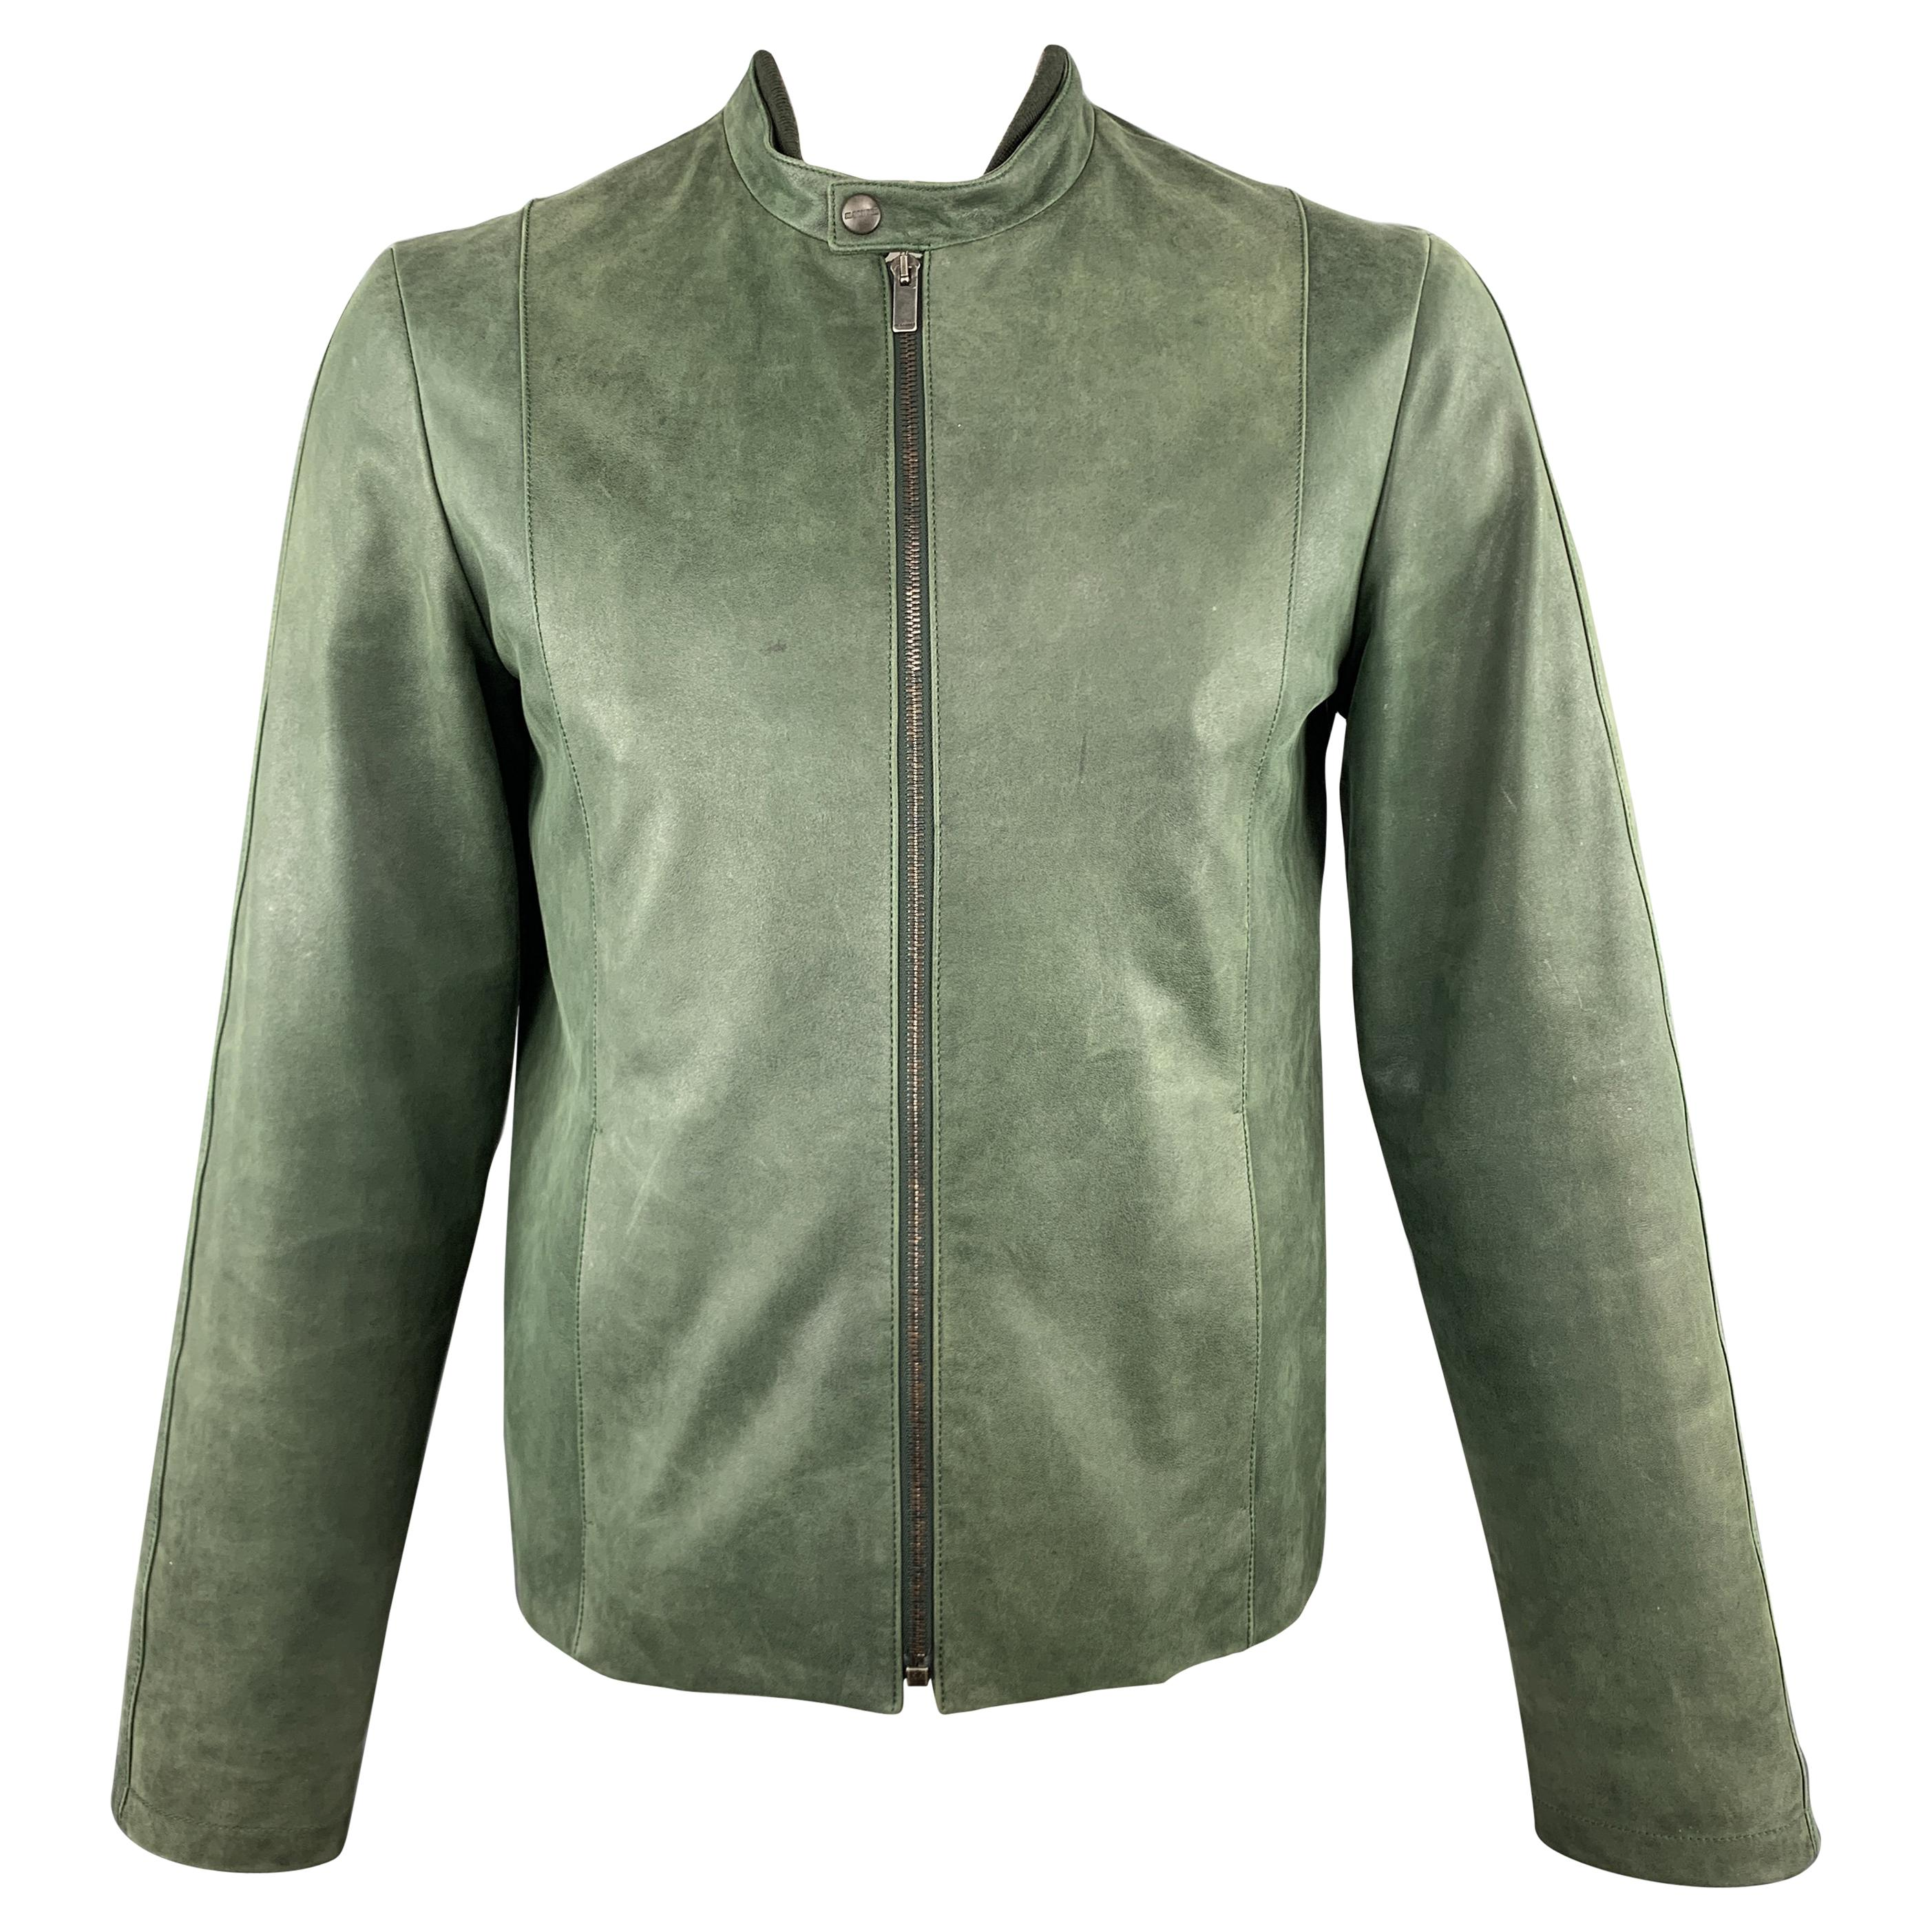 8dd8a0b4 Green Leather Jackets - 44 For Sale on 1stdibs